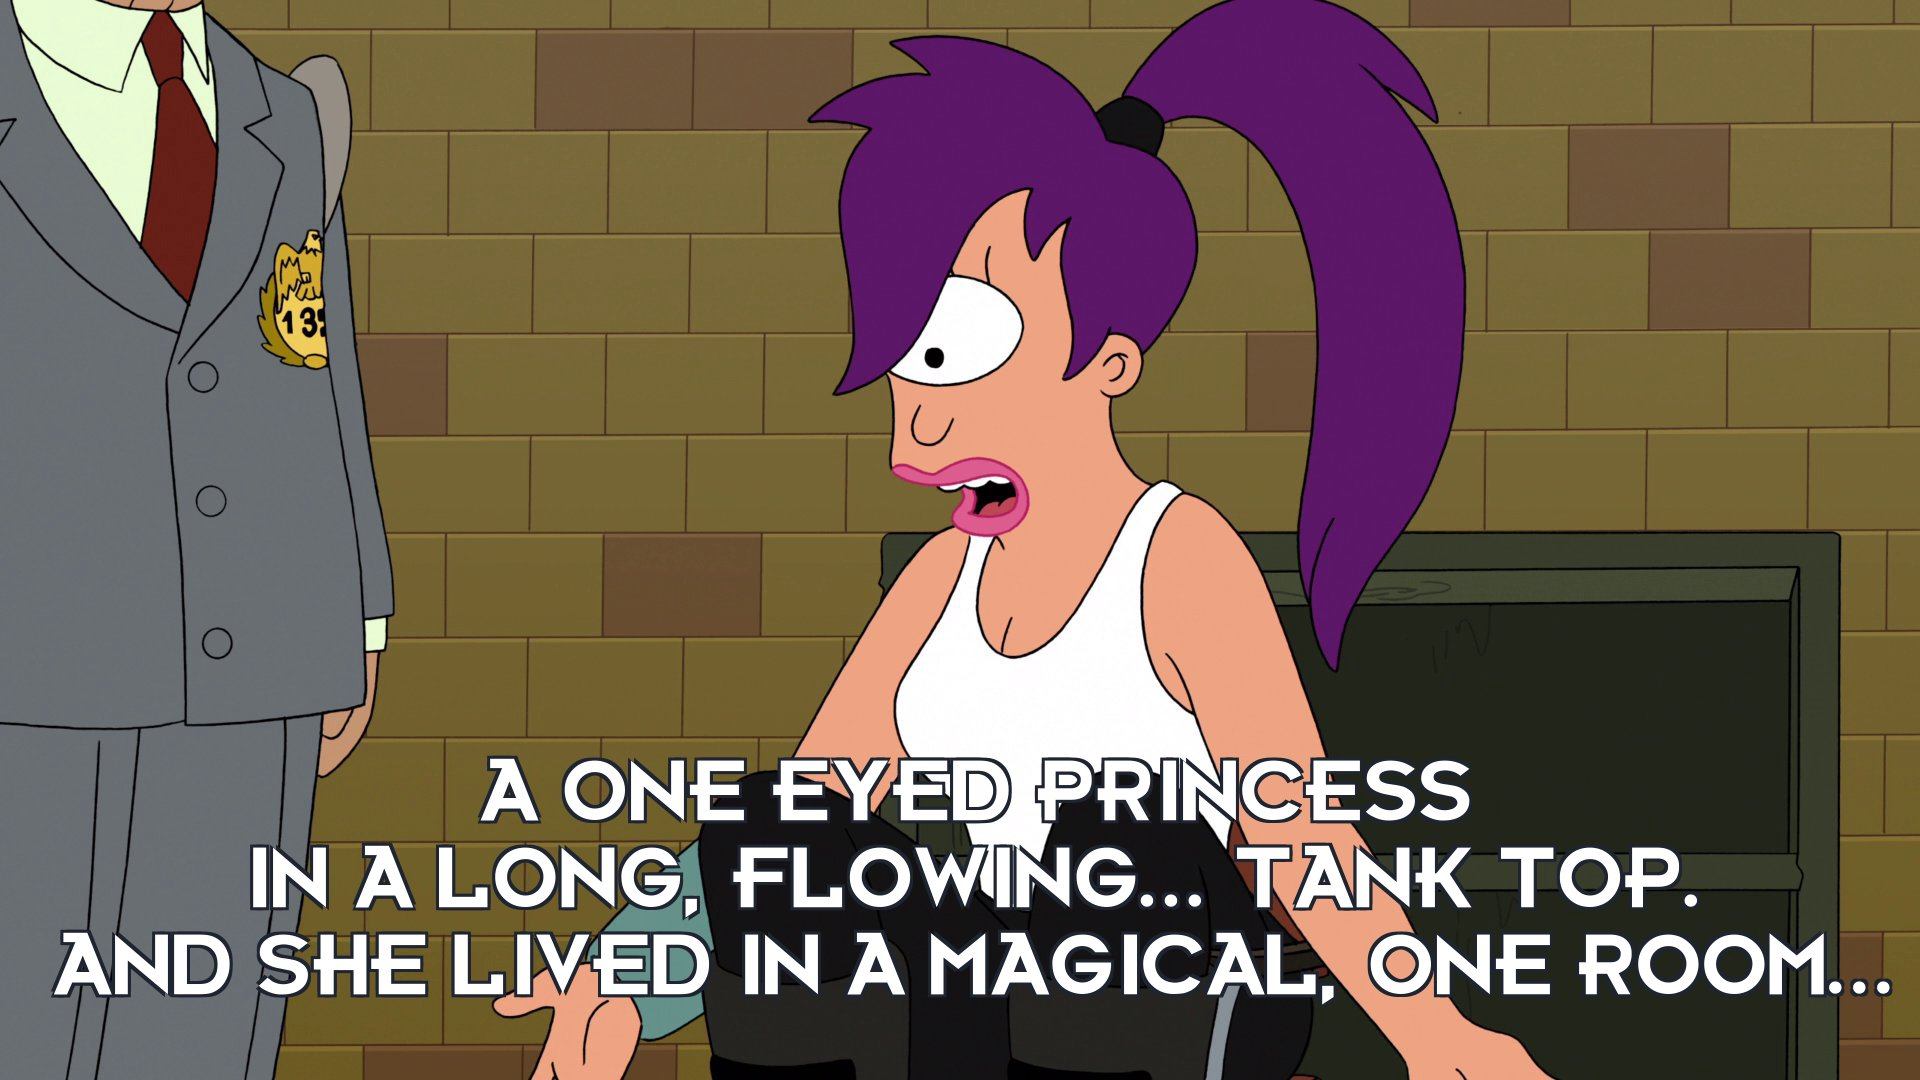 Turanga Leela: A one eyed princess in a long, flowing... tank top. And she lived in a magical, one room...